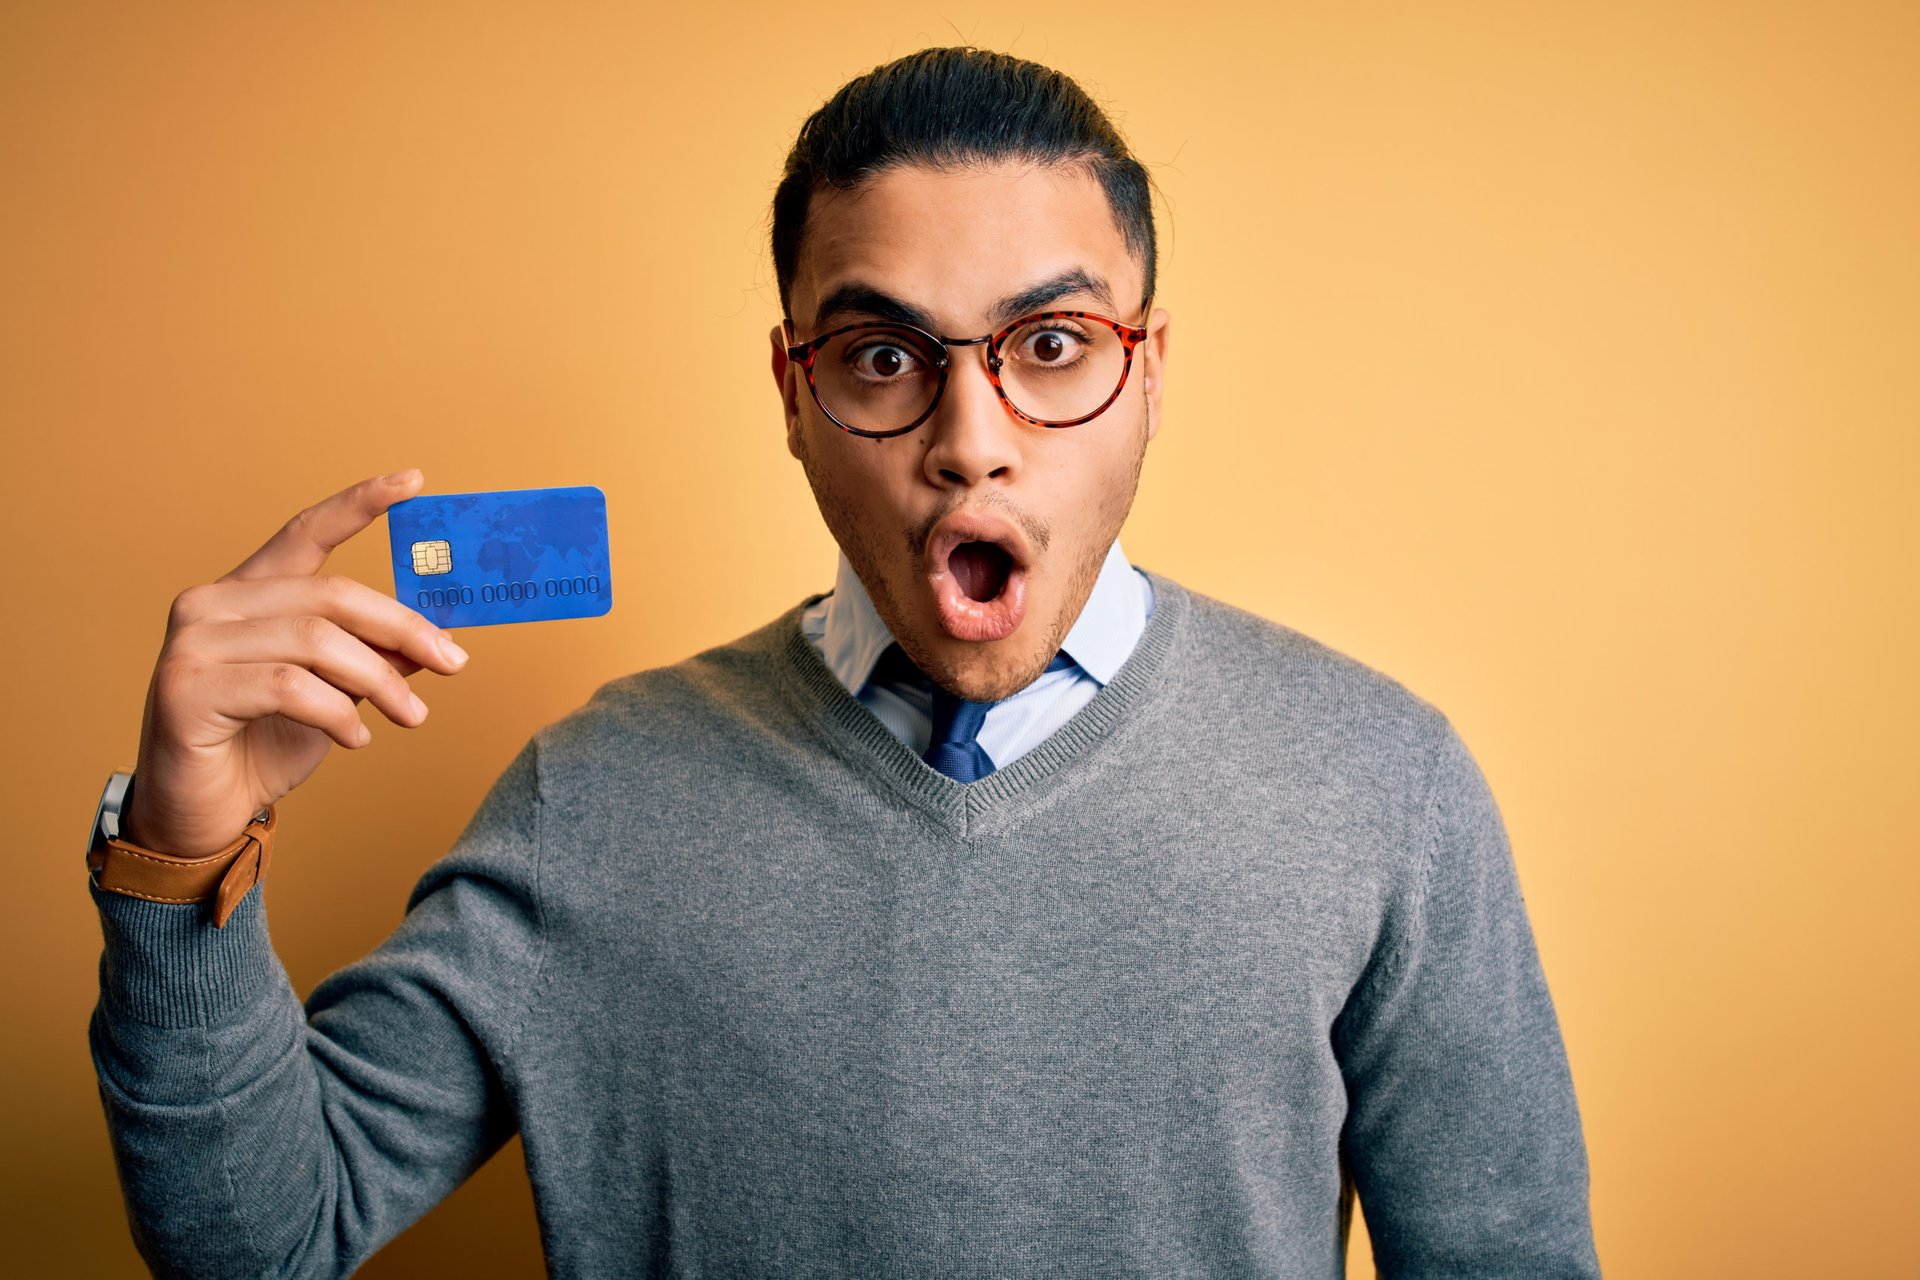 Fearful man with credit card